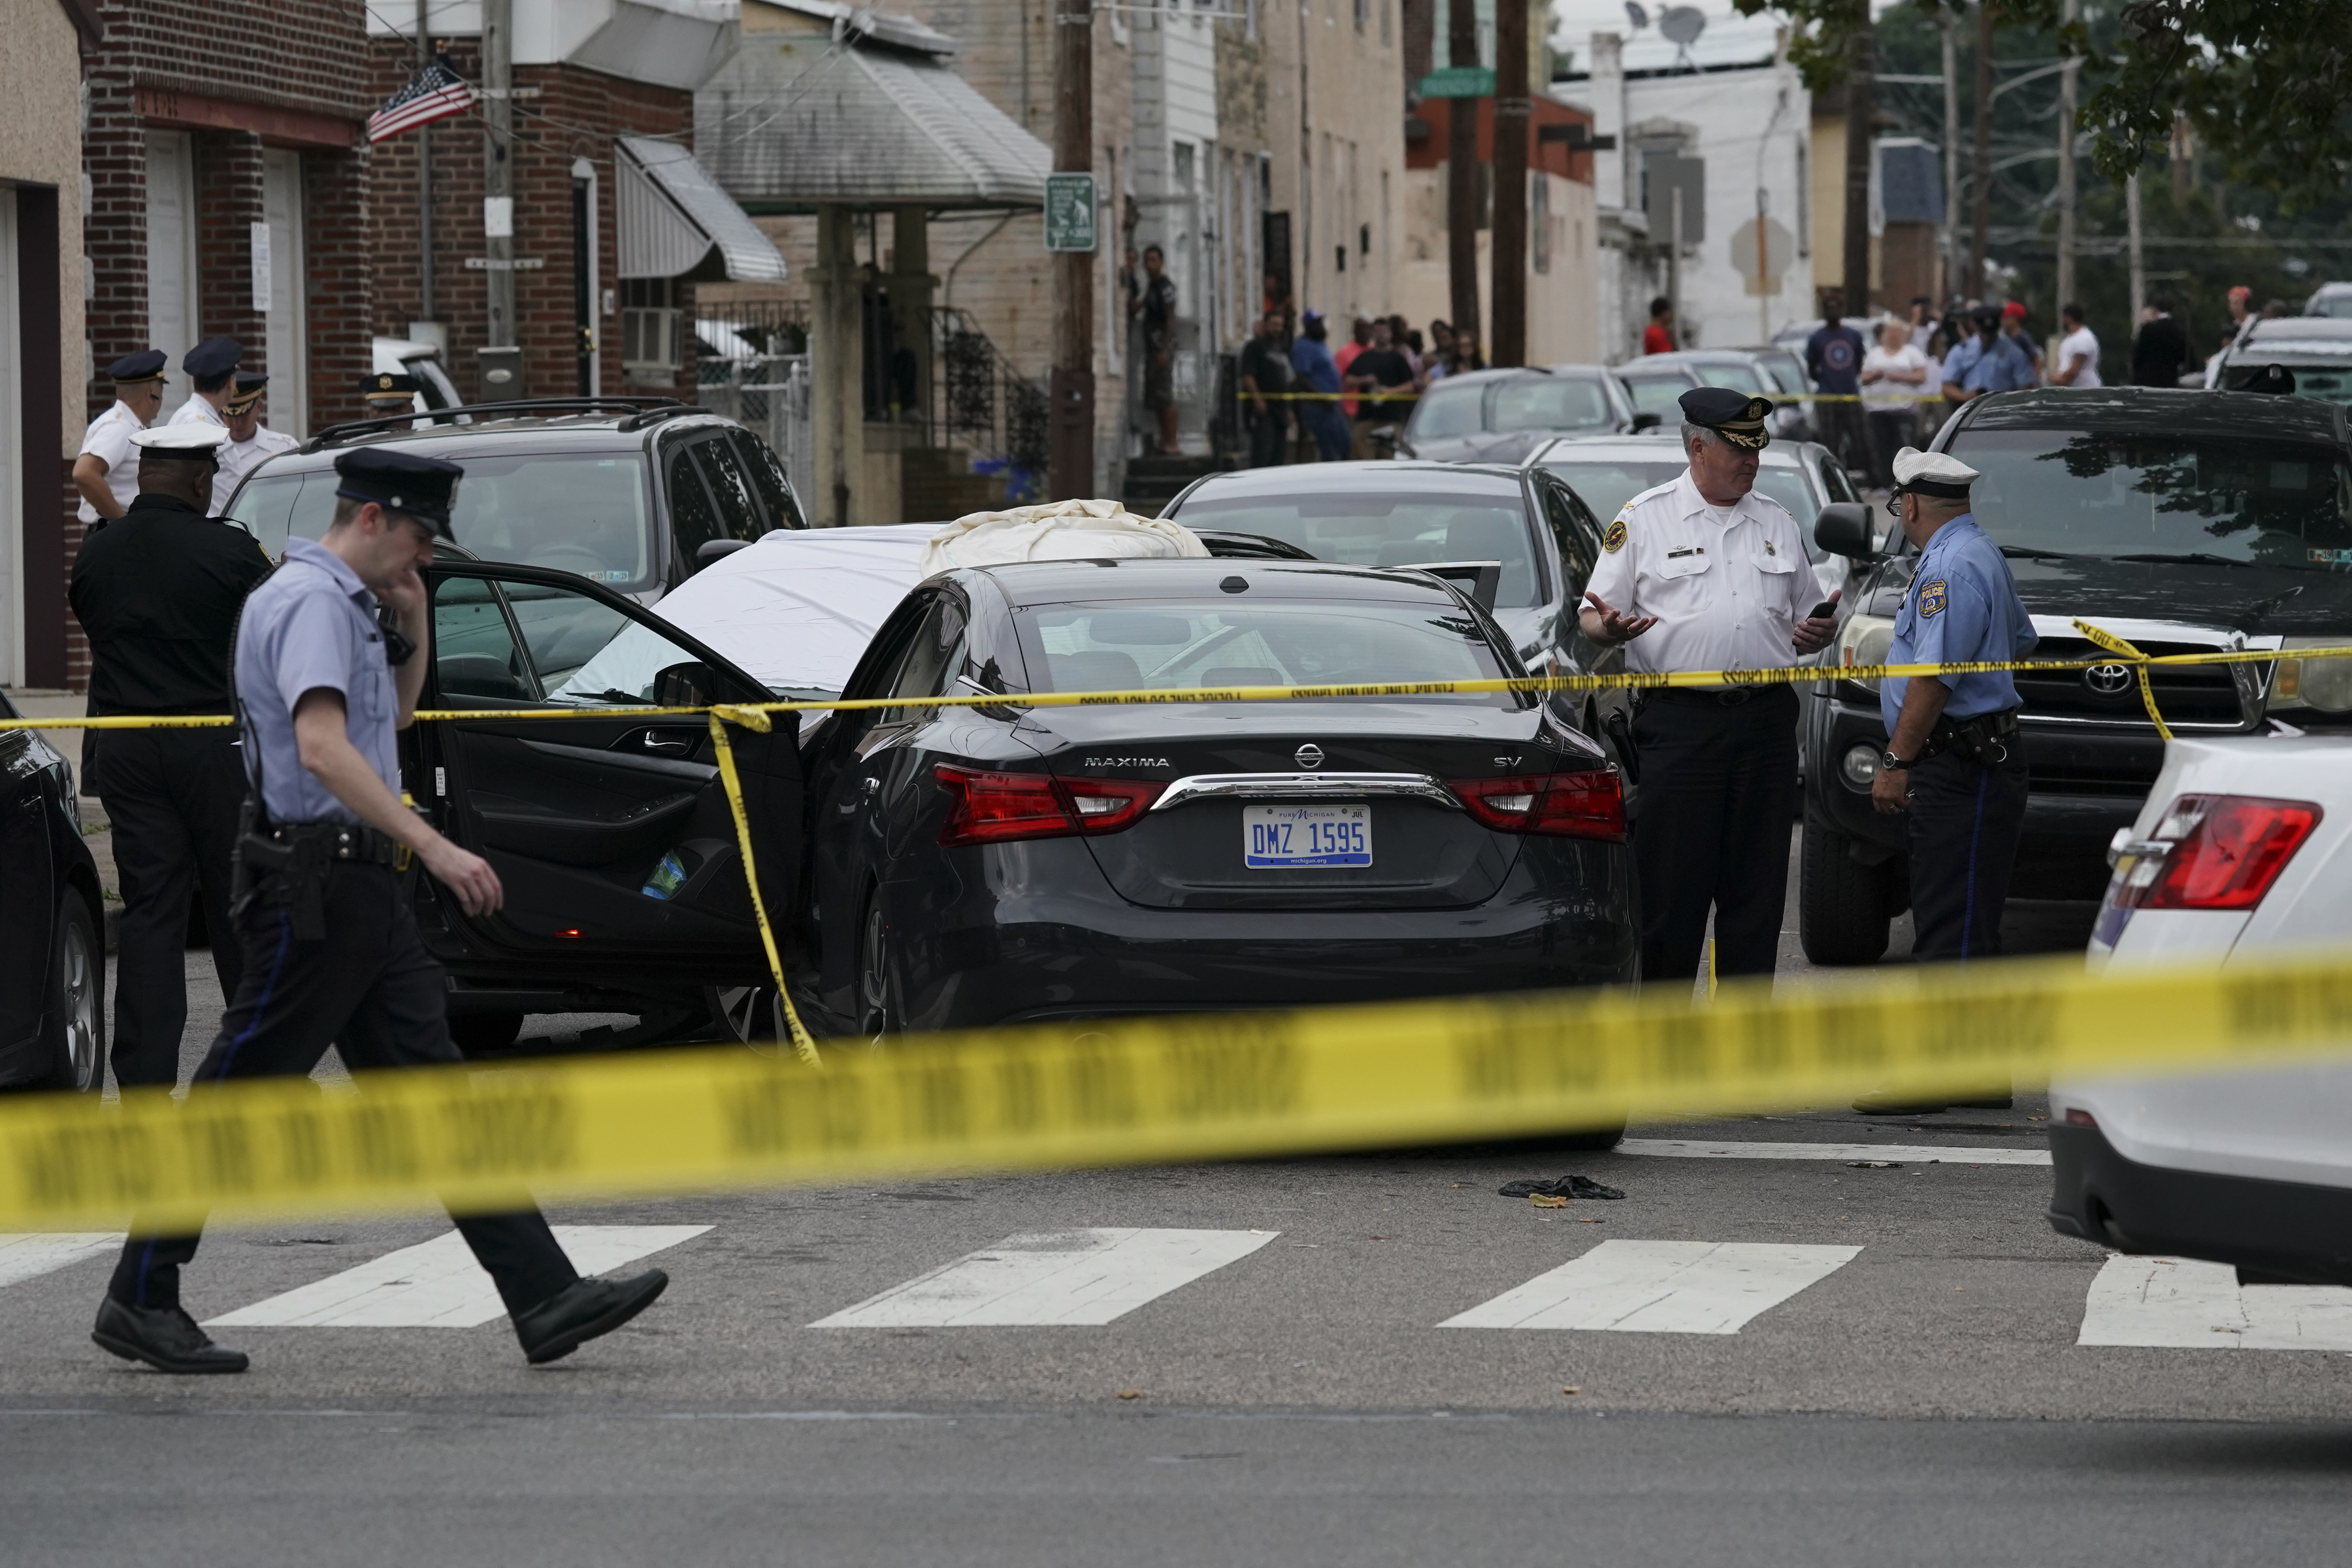 Investigators gather at the crime scene on Hegerman Street near Princeton Avenue in the Tacony section of Philadelpia, Monday Aug. 20, 2018, after police fatal shot a man.